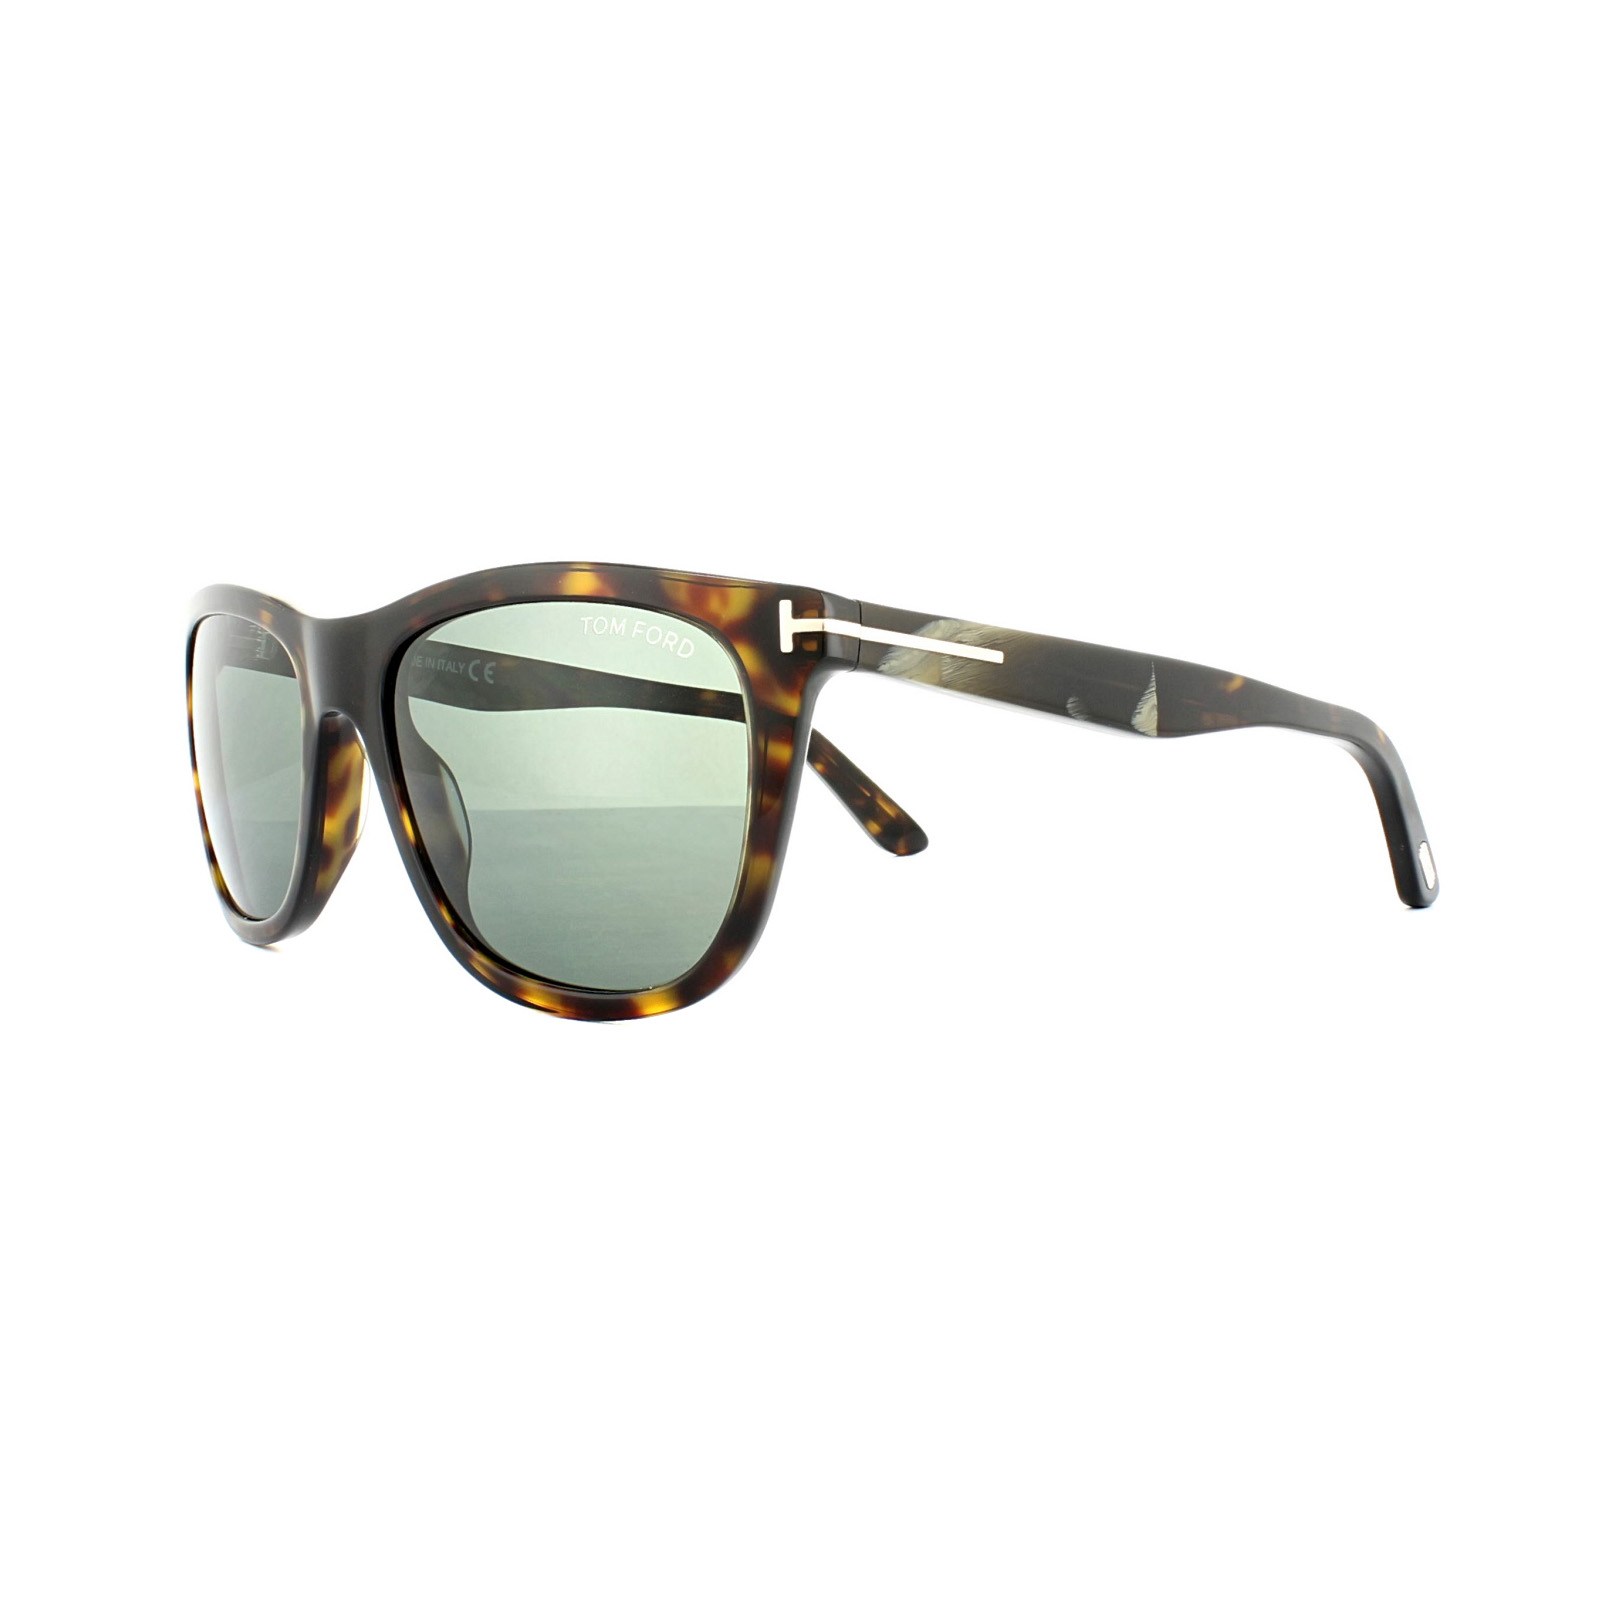 af509e2249a41 Cheap Tom Ford 0500 Andrew Sunglasses - Discounted Sunglasses